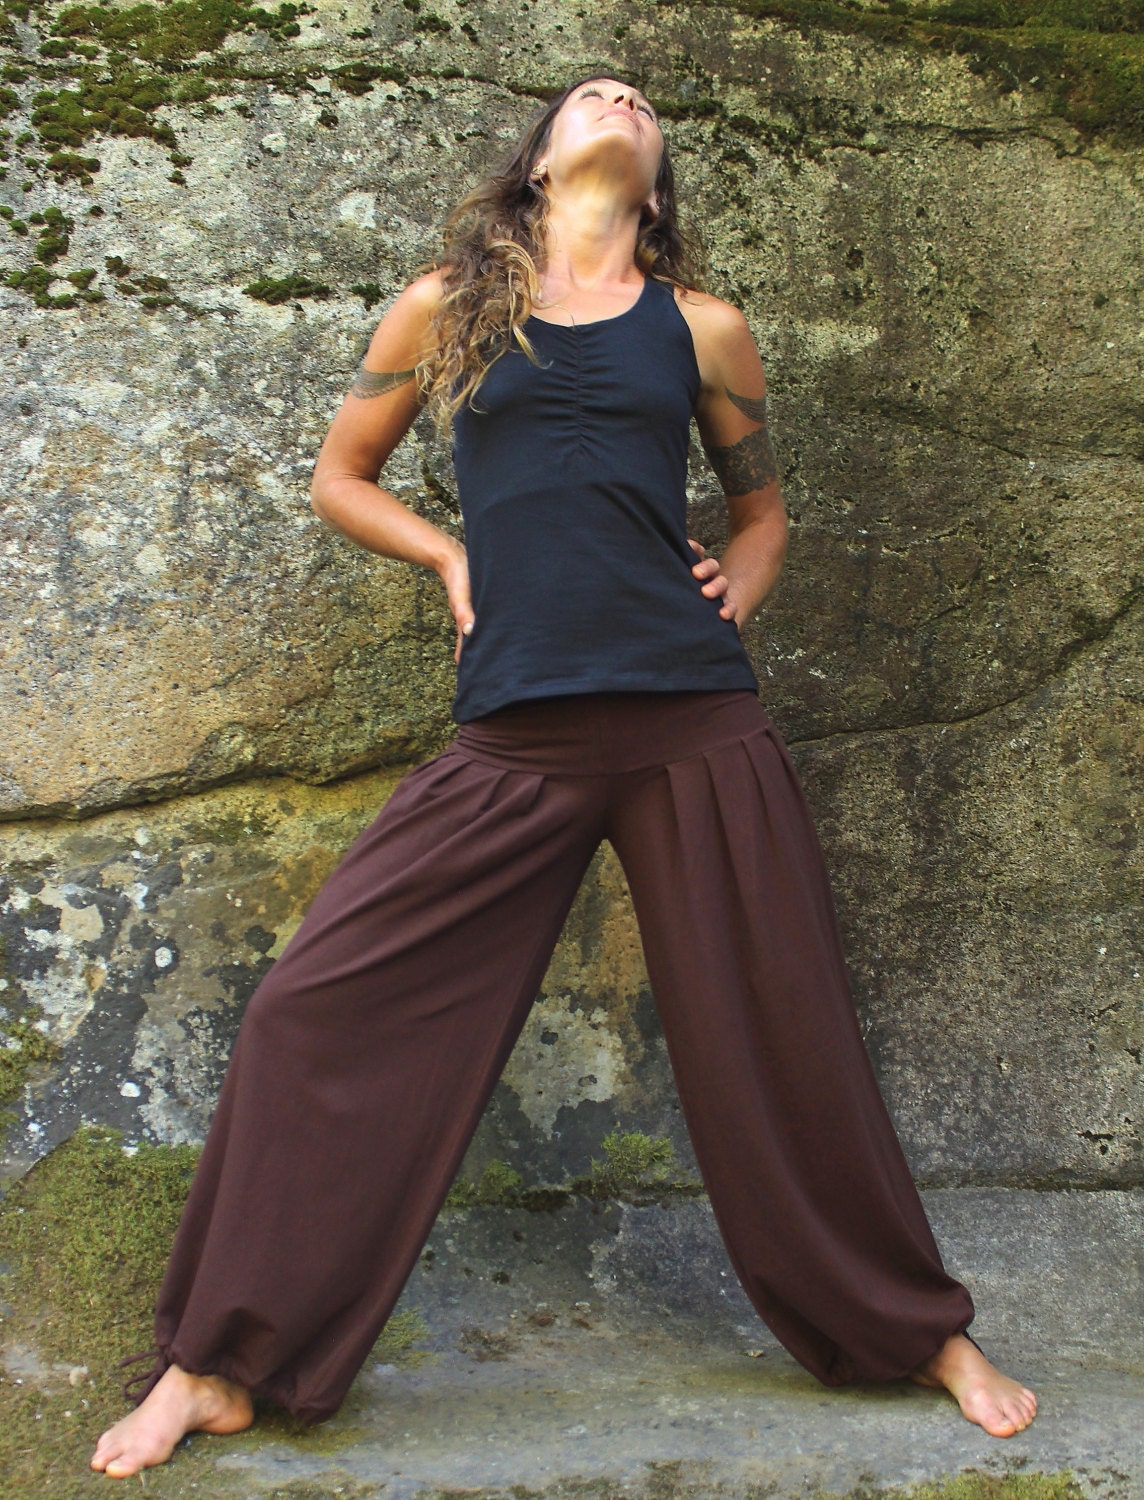 Harem Pants. A true trend comeback in dance and fashion, harem pant sit high on the waist, are baggy at the thighs and tapered down the legs. We are bringing you the last in harem looks.